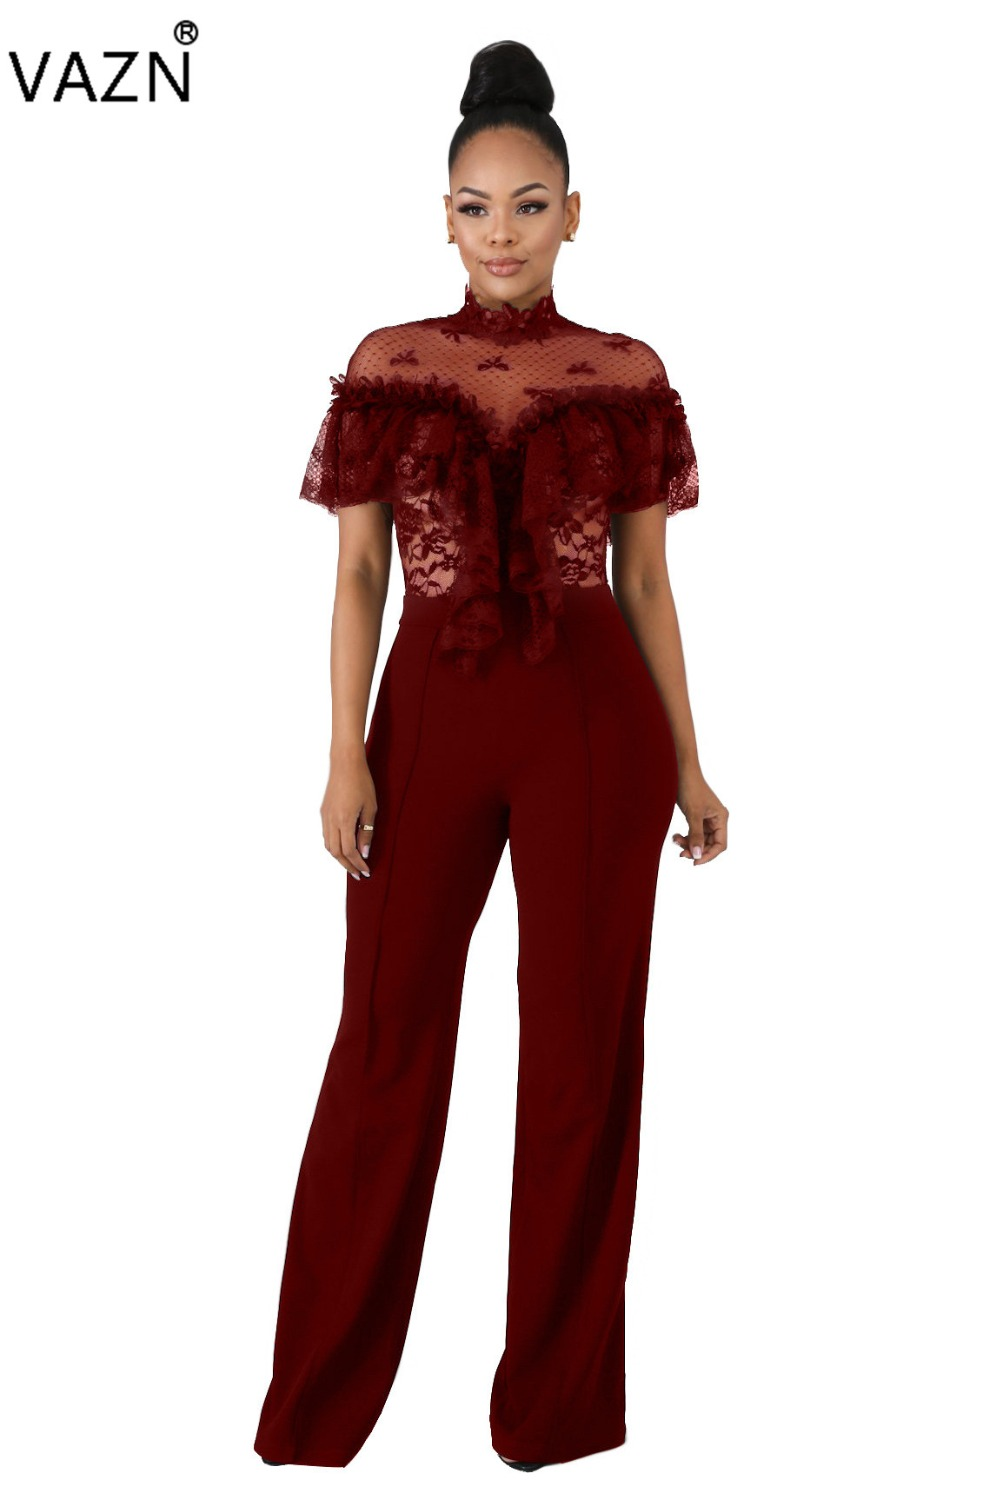 Vazn Spring Hot 2019 Famous Brand Women Solid 2 Color Wide Leg Long Jumpsuits Lady O-neck Short Sleeve Less Jumpsuits La3086 Convenient To Cook Jumpsuits